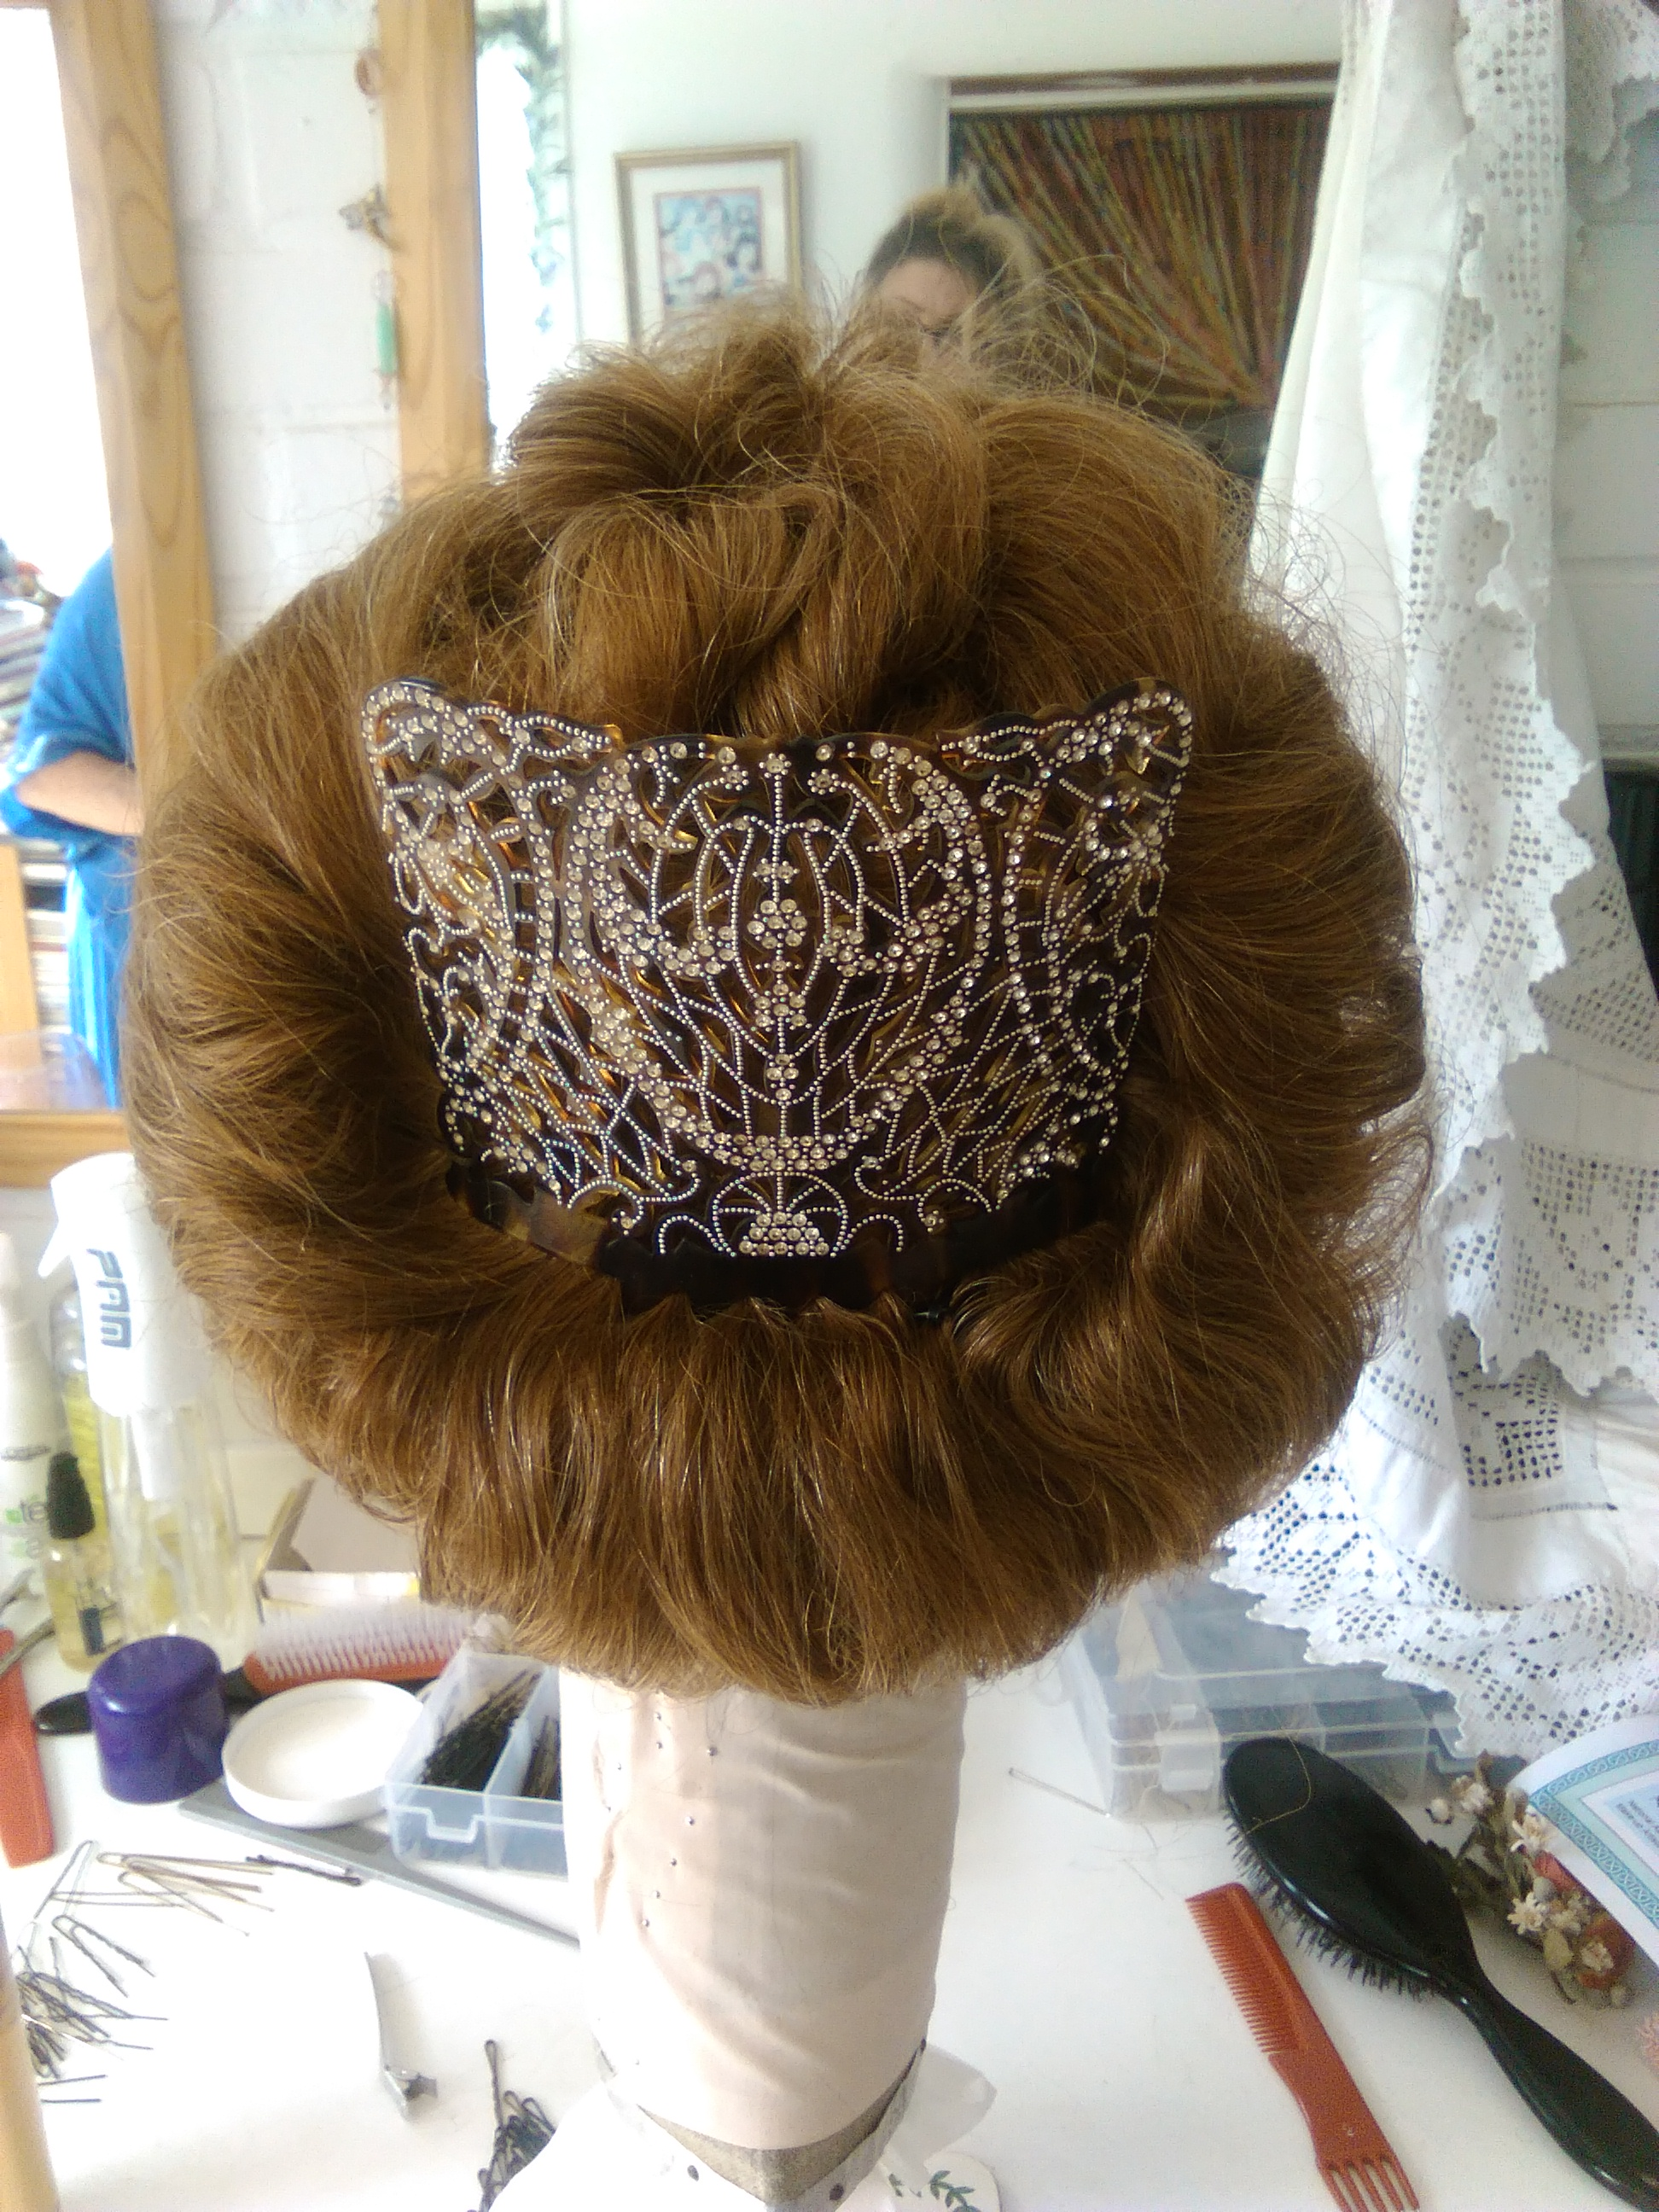 My Edwardian hairstyle was perfected with an original herringbone ornate comb from Stephanie's wonderful collection